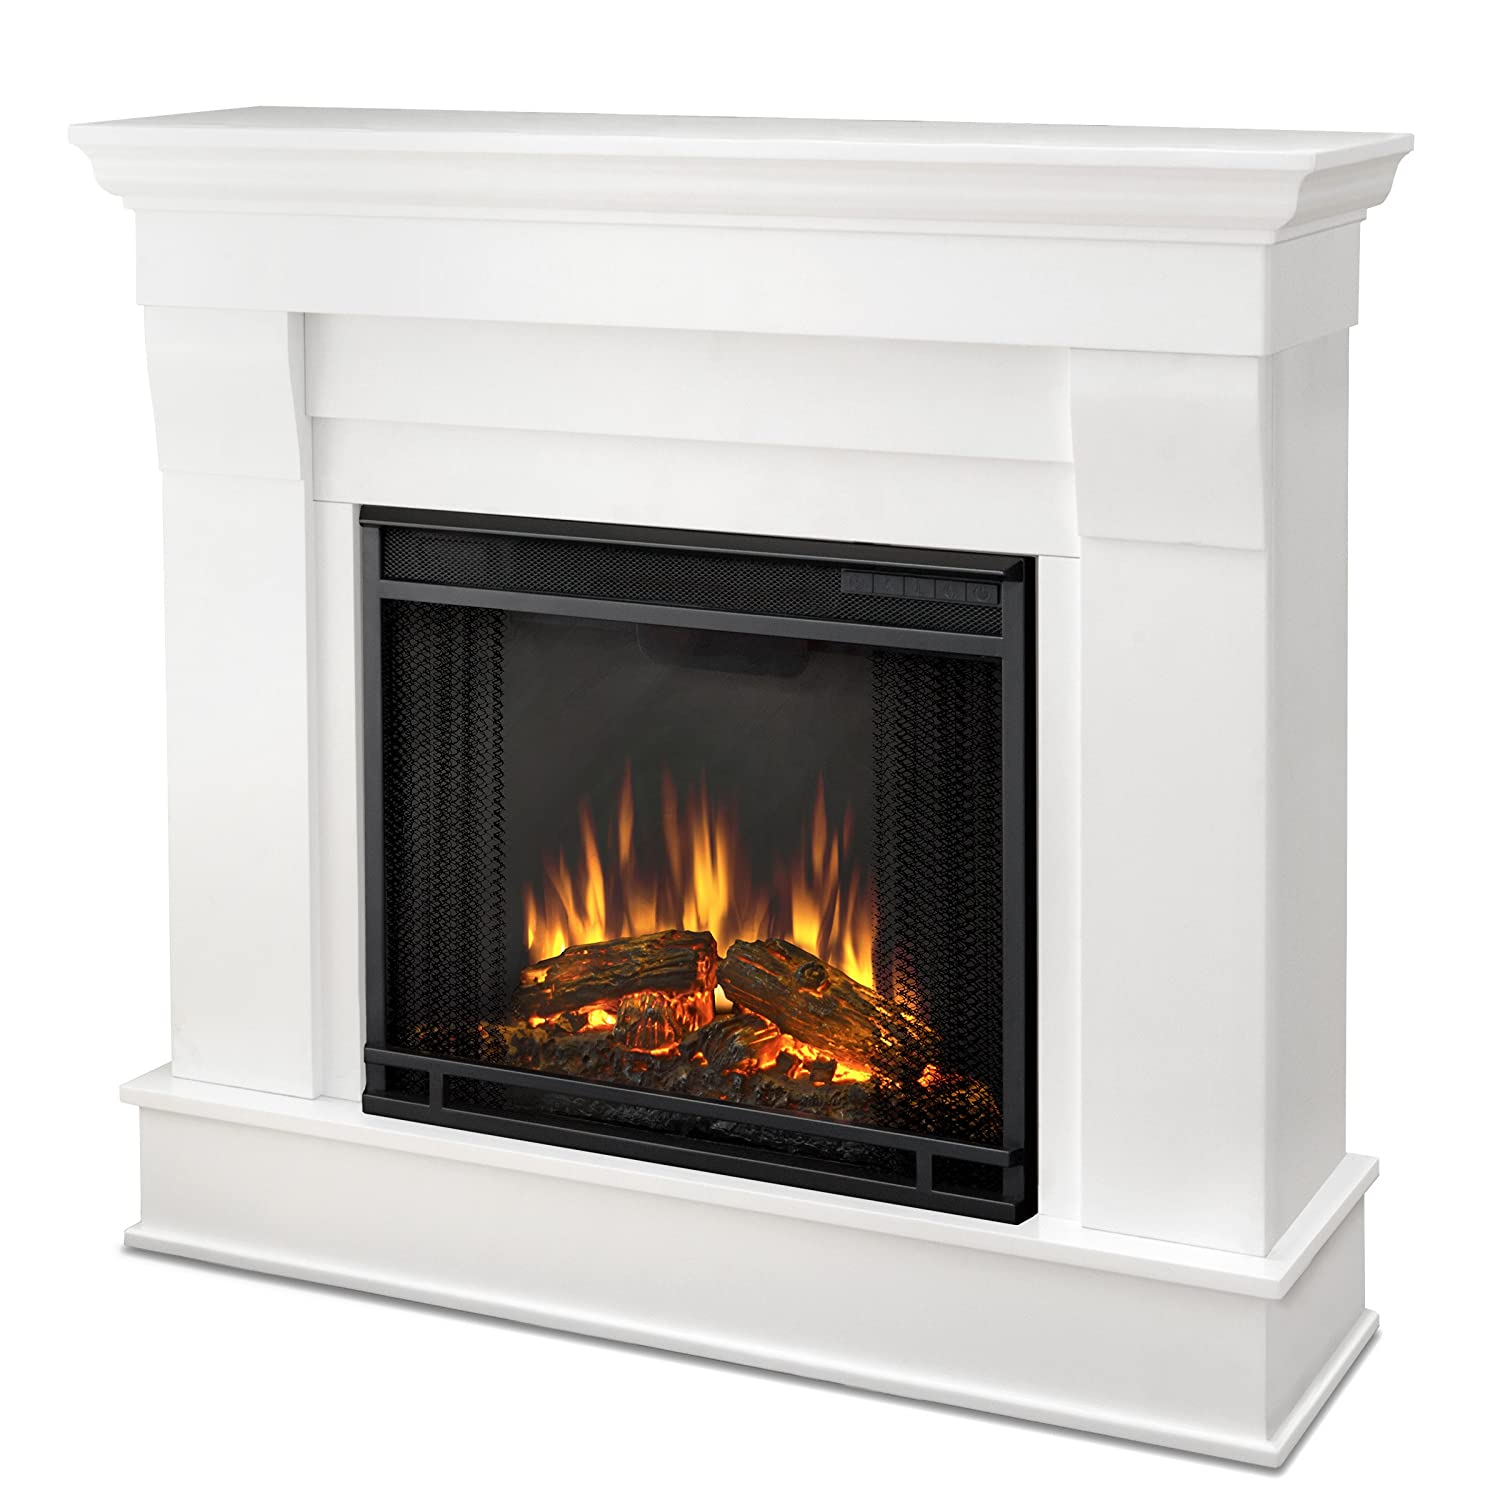 Amazon.com: Real Flame 5910E Electric Fireplace, Small, White: Home &  Kitchen - Amazon.com: Real Flame 5910E Electric Fireplace, Small, White